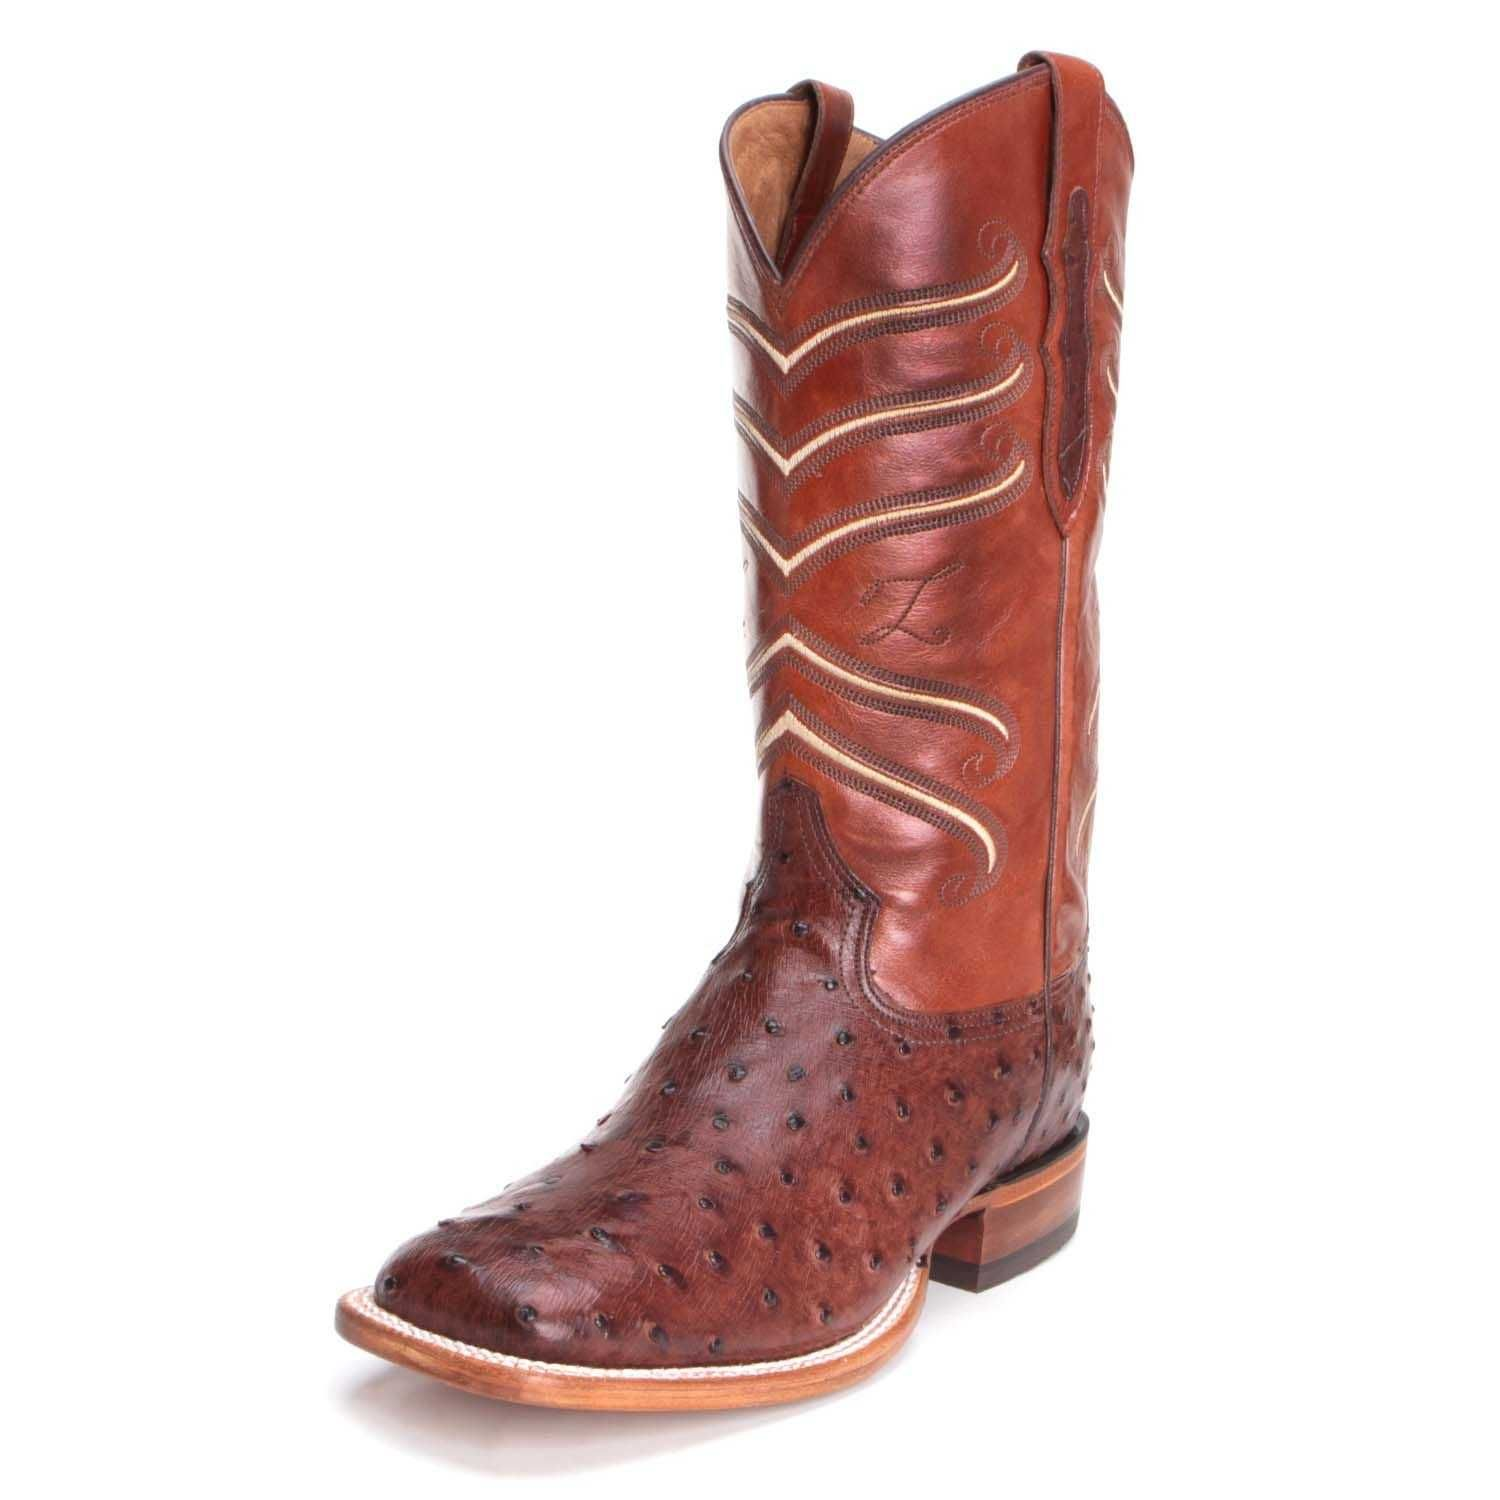 e9a593caf78 Tony Lama Mens Lemuel Full Quill Ostrich Boots CL821 in 2019 ...